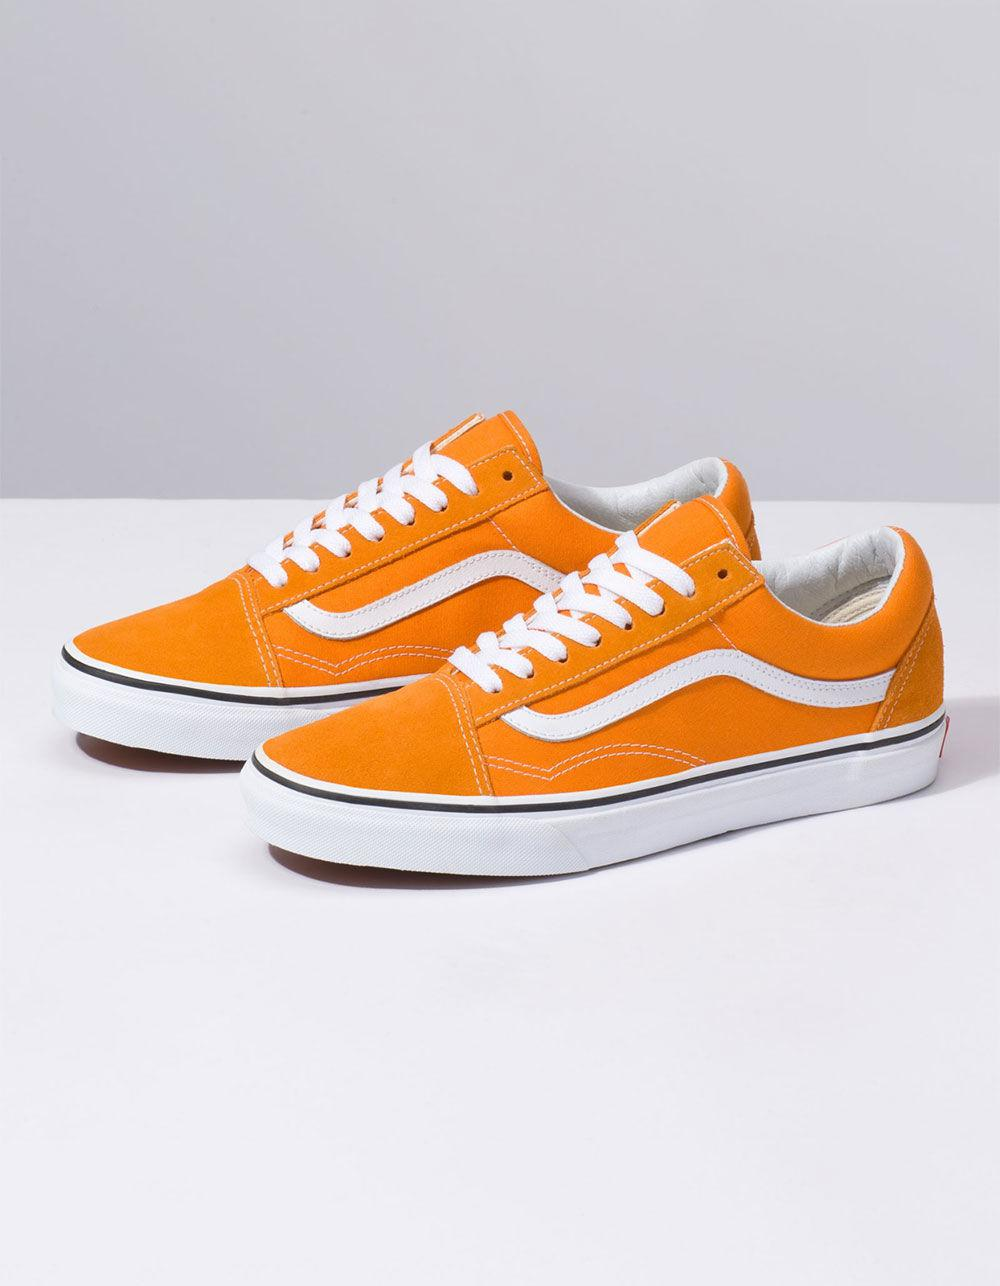 62d5c9c26fc0 Lyst - Vans Old Skool Dark Cheddar   True White Shoes